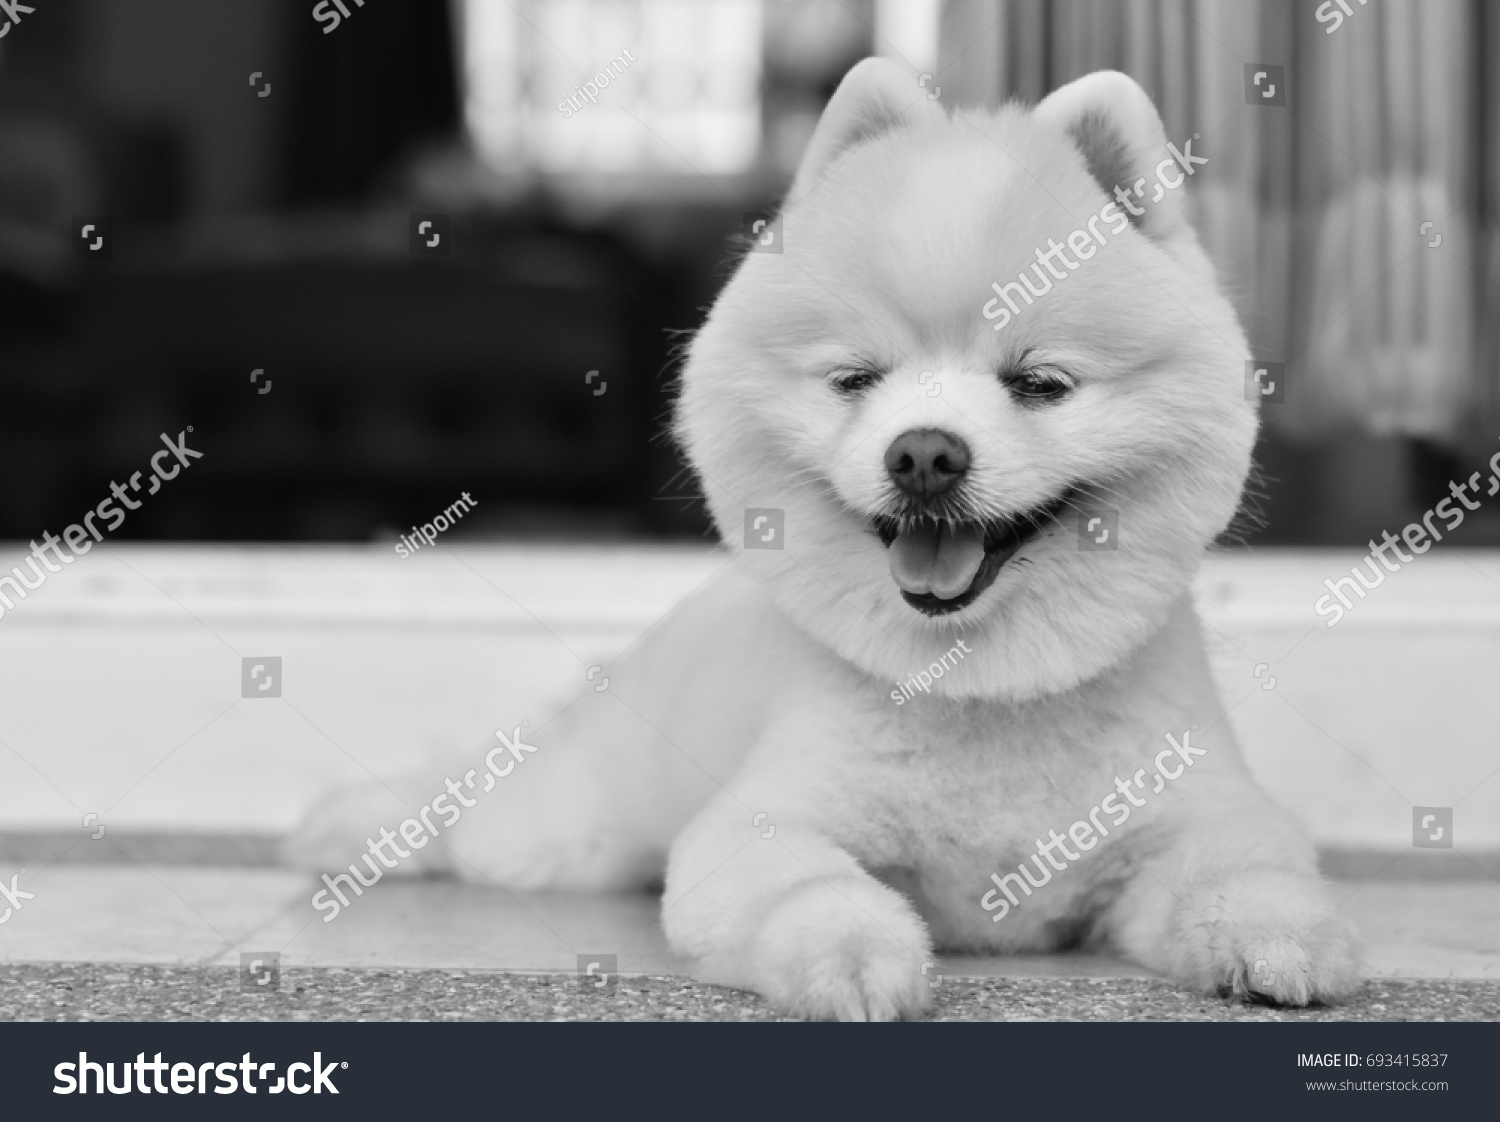 White Pomeranian Dog Breeds Cute Haircut Stock Photo Edit Now